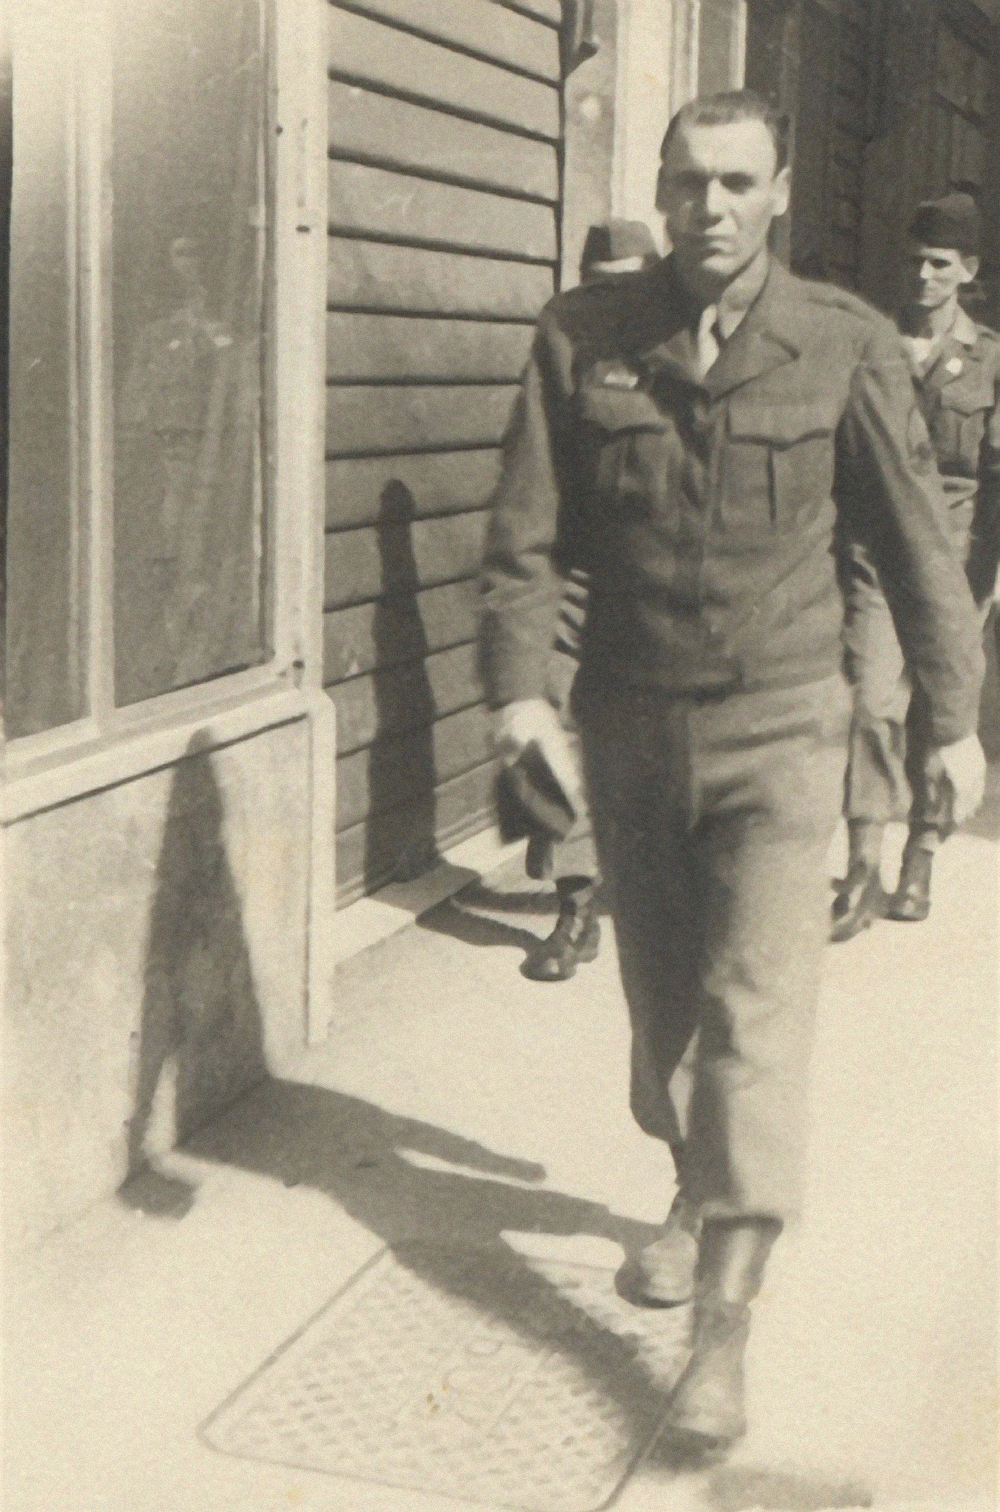 1943-46: U.S. Army  During World War II, Bavasi served as a machine gunner and infantry staff sergeant in the North African/Italian campaigns   Next »